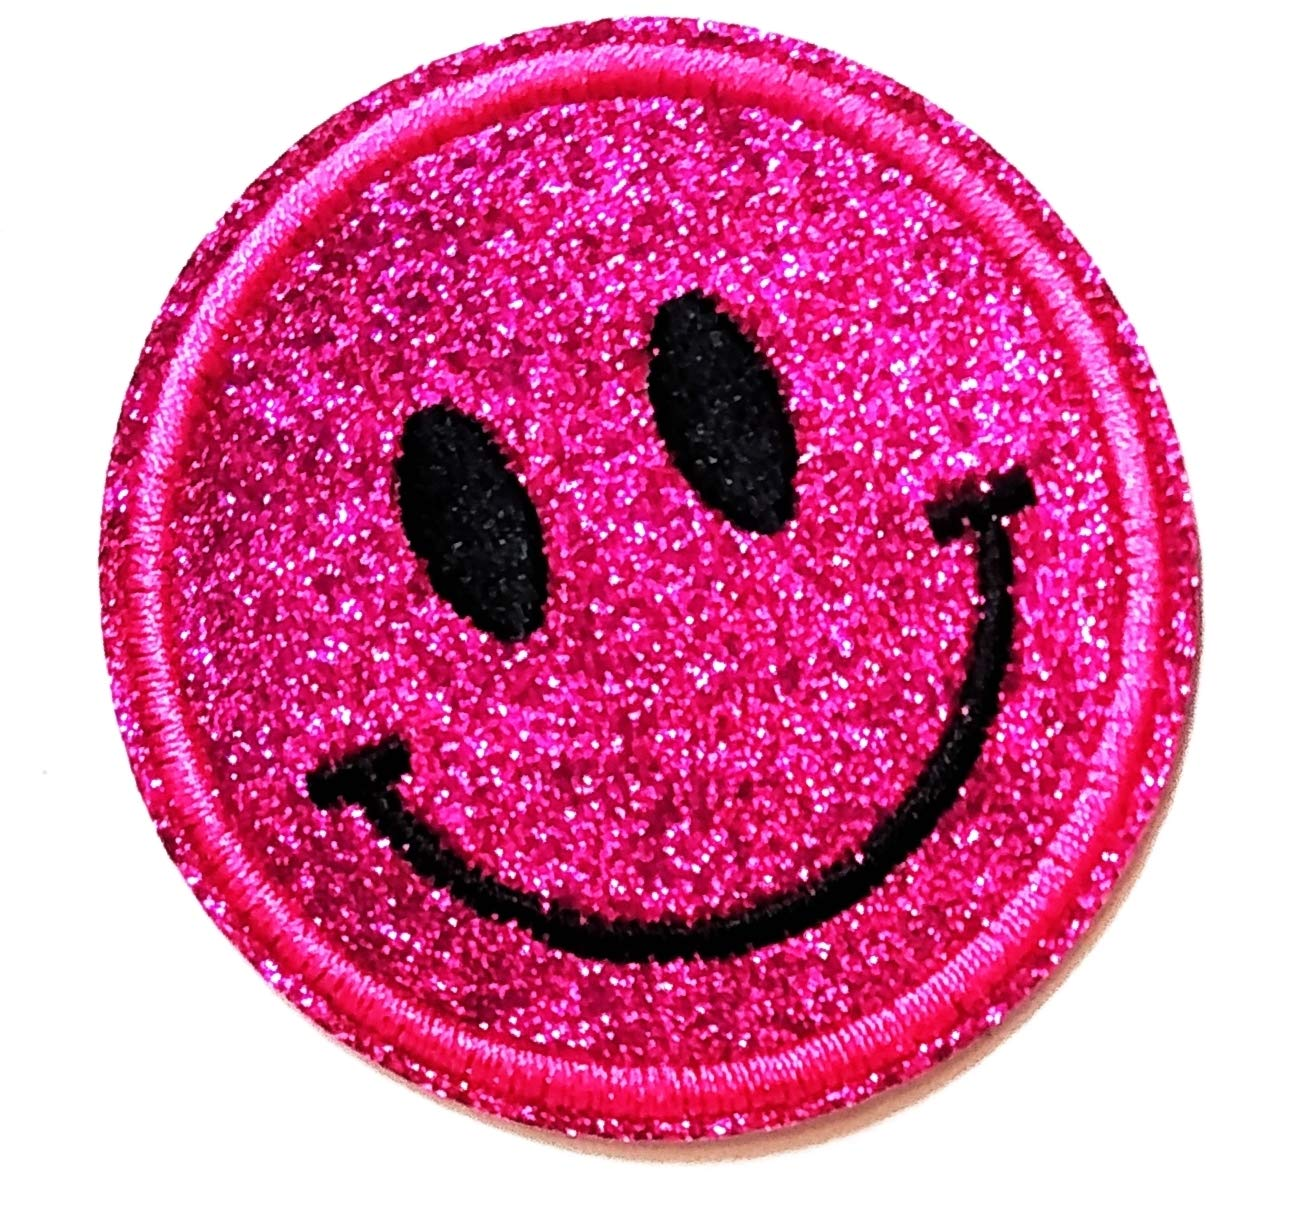 2.5'' X 2.5'' Good Day Pink Smiley Happy face Cartoon Kids Logo Jacket t-Shirt Jeans Polo Patch Iron on Embroidered Logo Sign Badge Comics Cartoon Patch by Tour les jours Shop